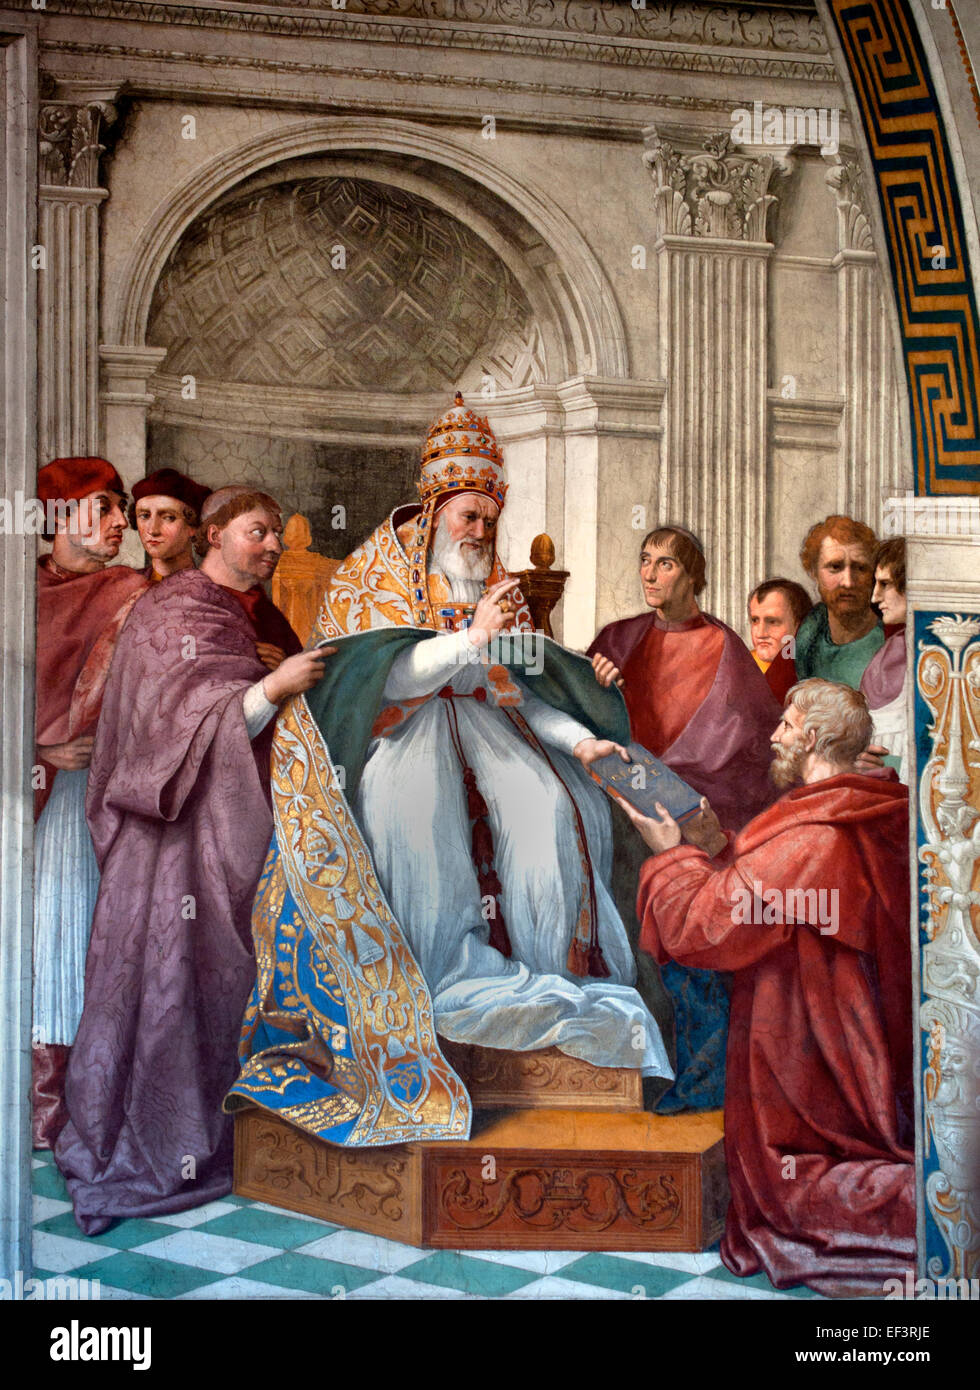 The Delivery of the Decretals to Pope Gregory IX, a wall fresco in the Raphael Rooms. The painting depicts Pope - Stock Image